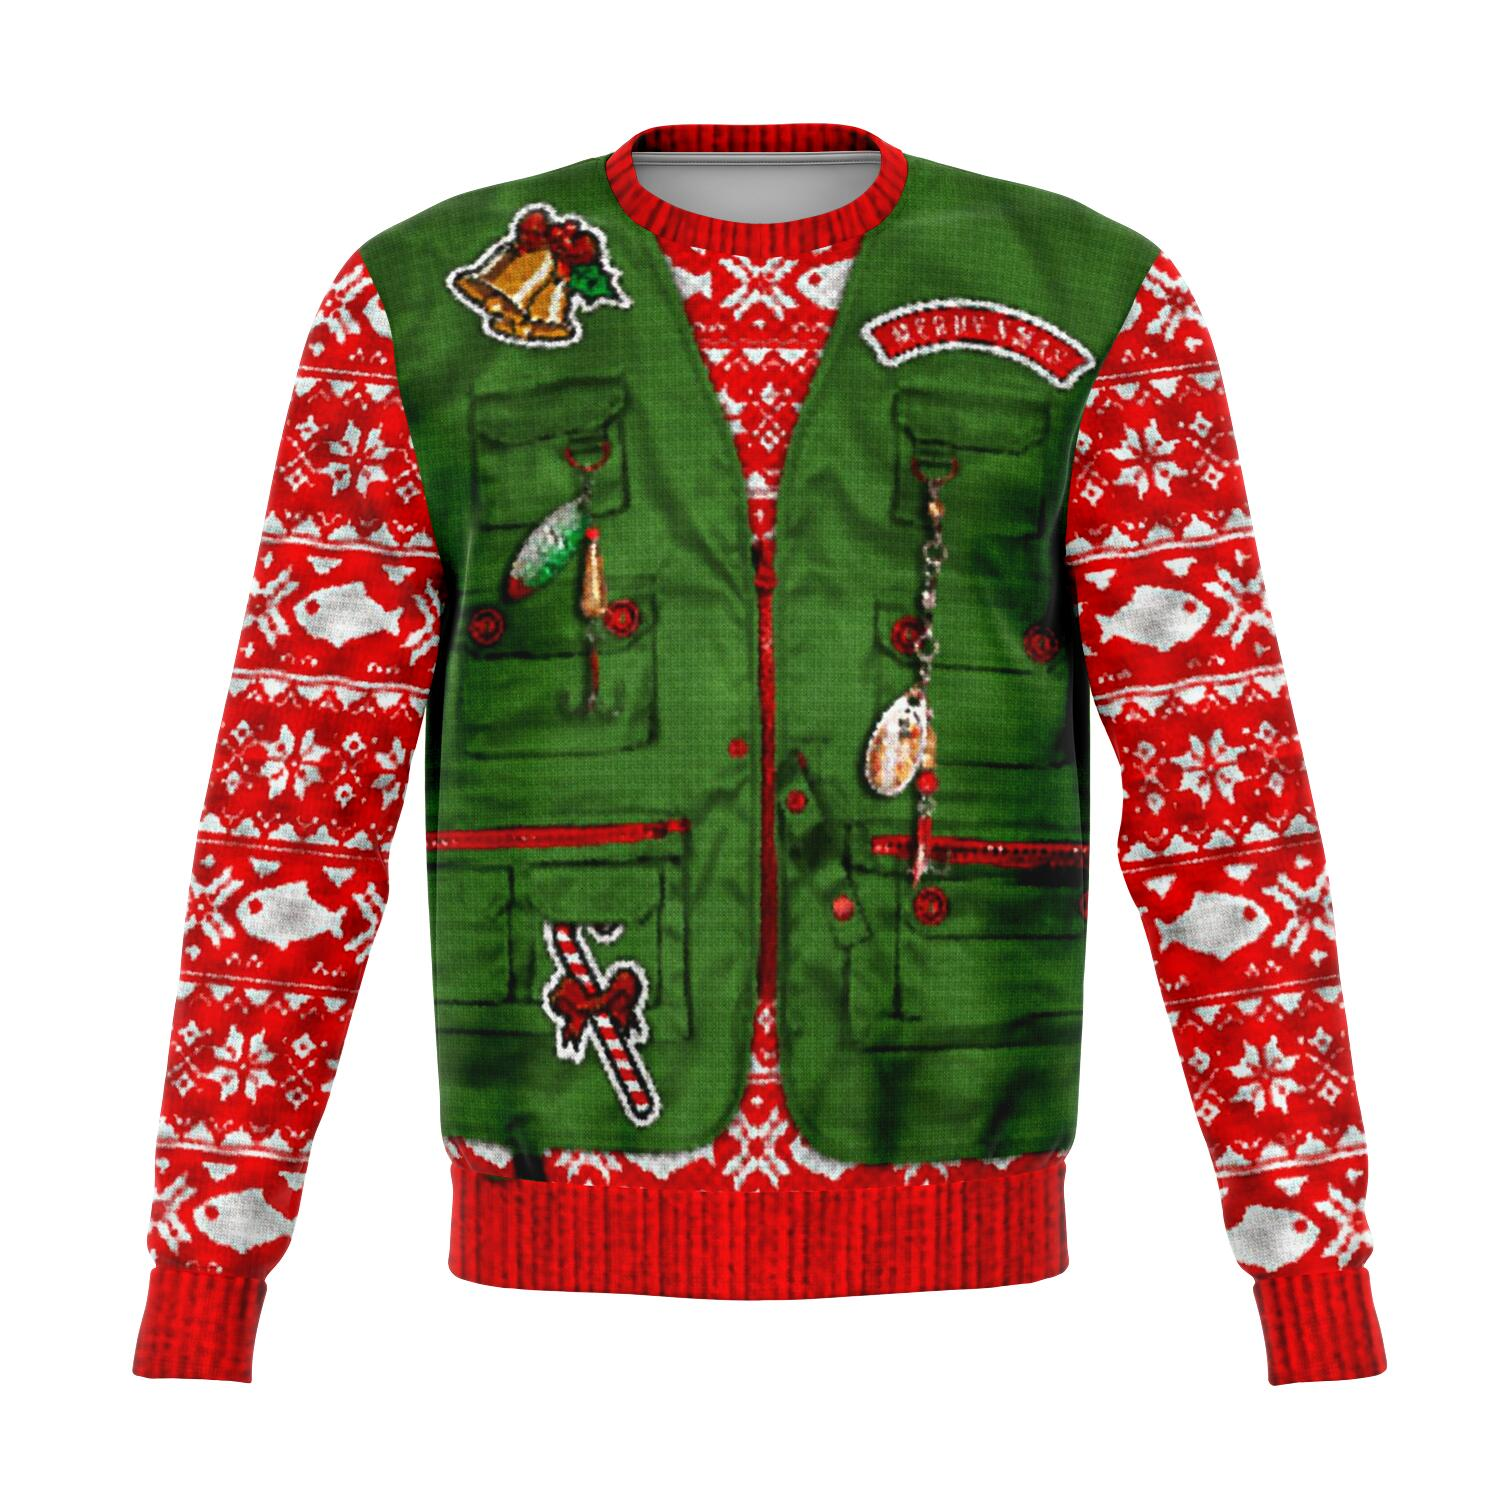 Merry Fishmas UGLY CHRISTMAS SWEATER